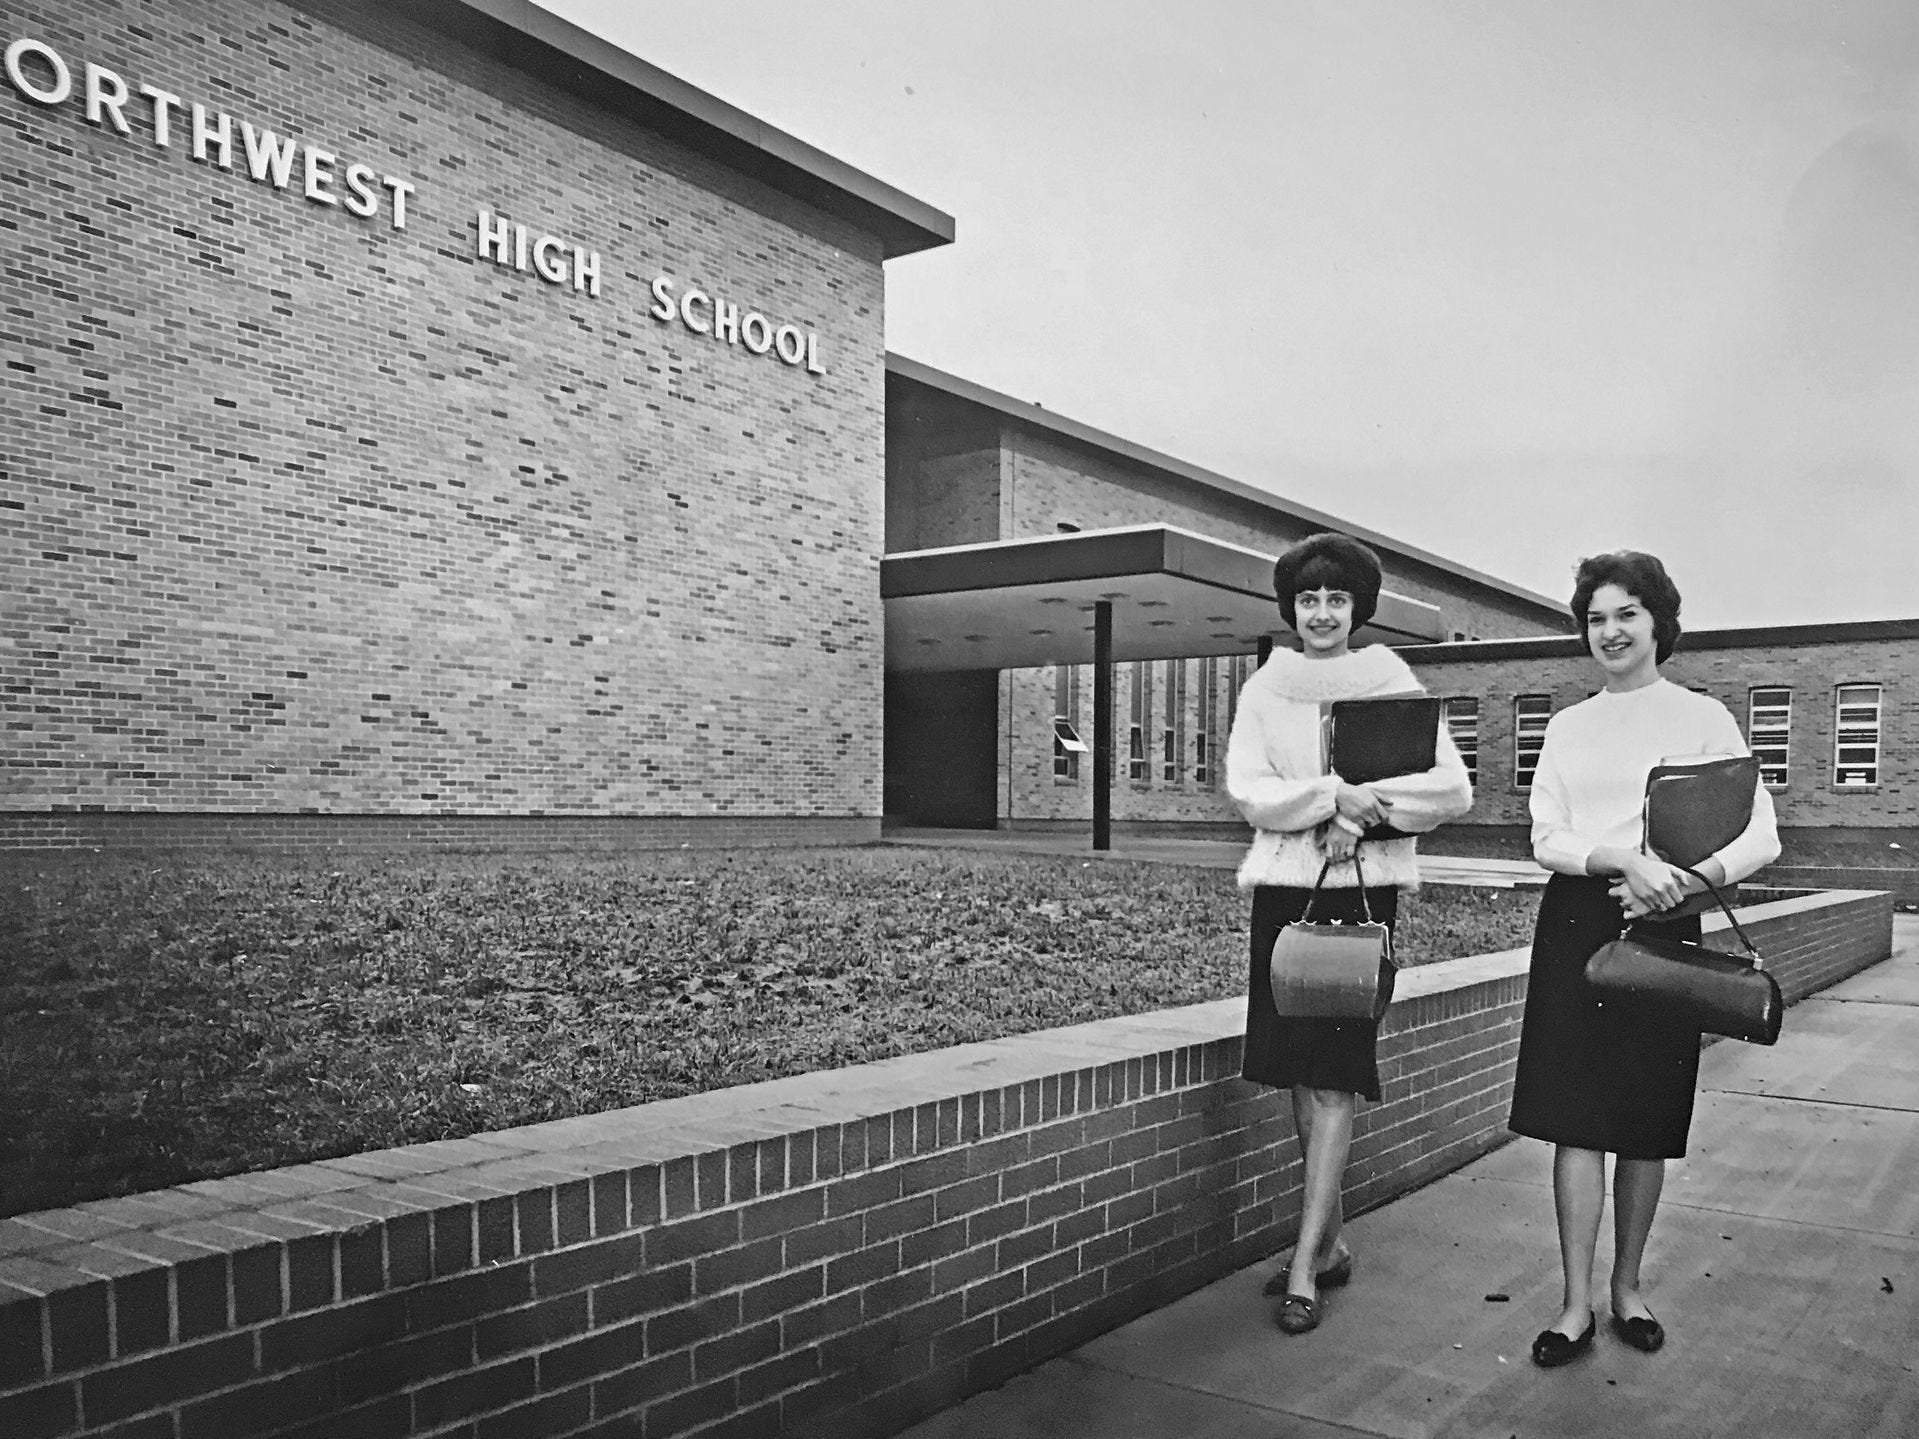 Gilda Eller, left and Phyllis Gugenheim, both juniors were just two of the new students at Northwest High school in 1964.